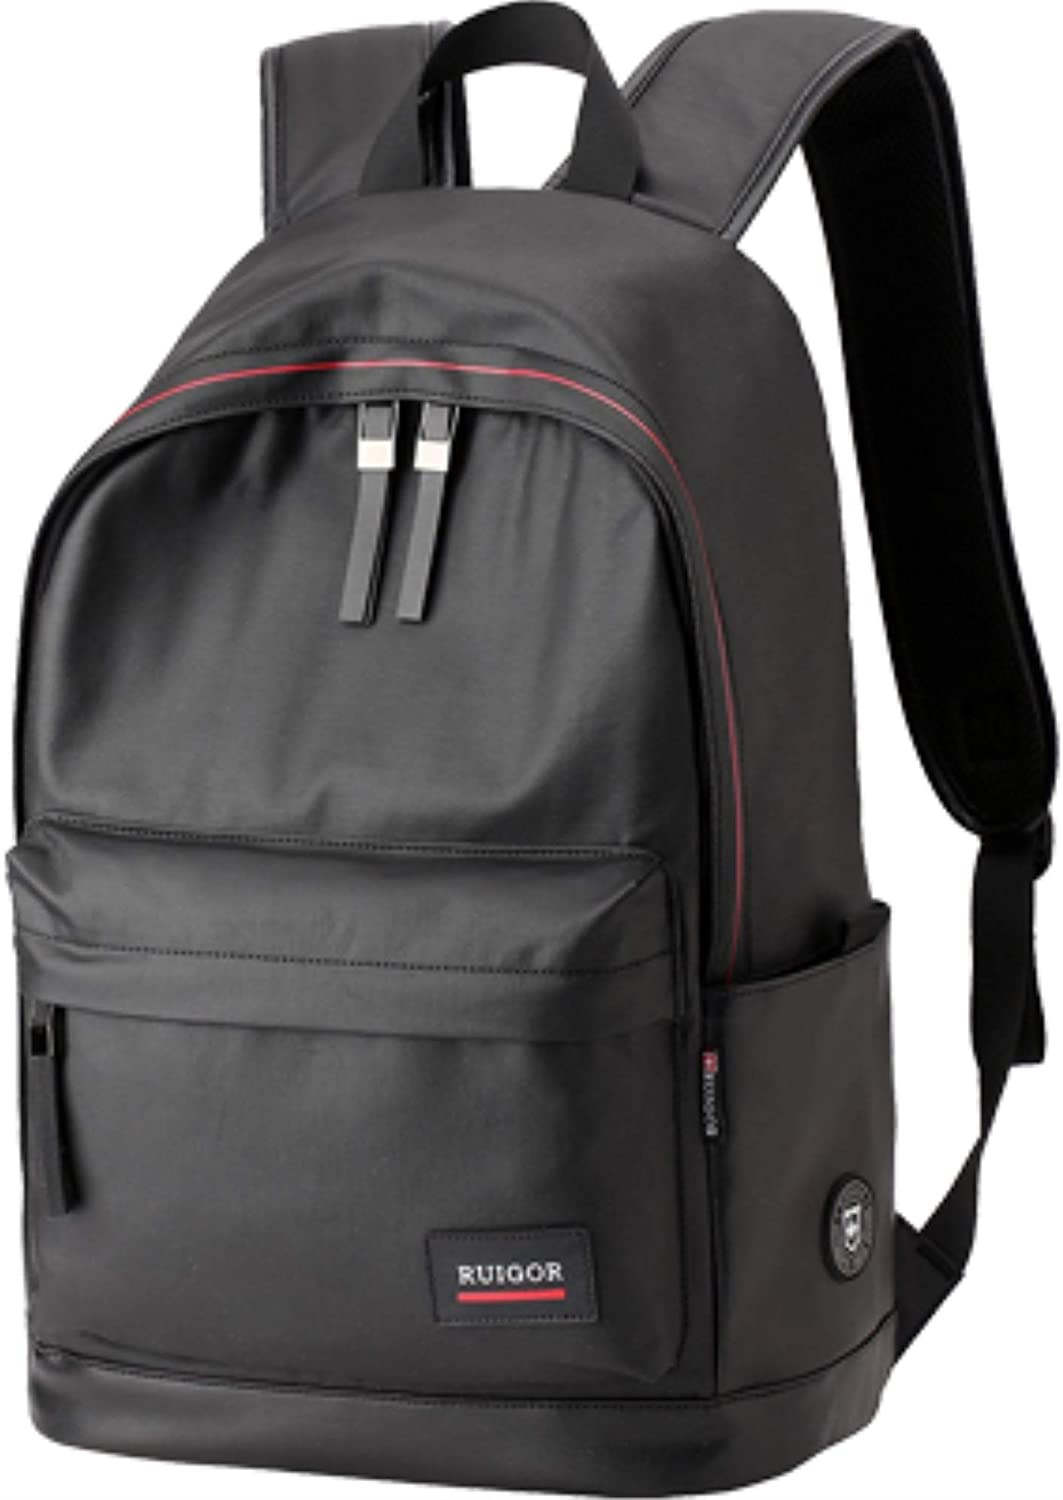 Ruigor RCIB09-1N0SM City 09 Backpack, Black